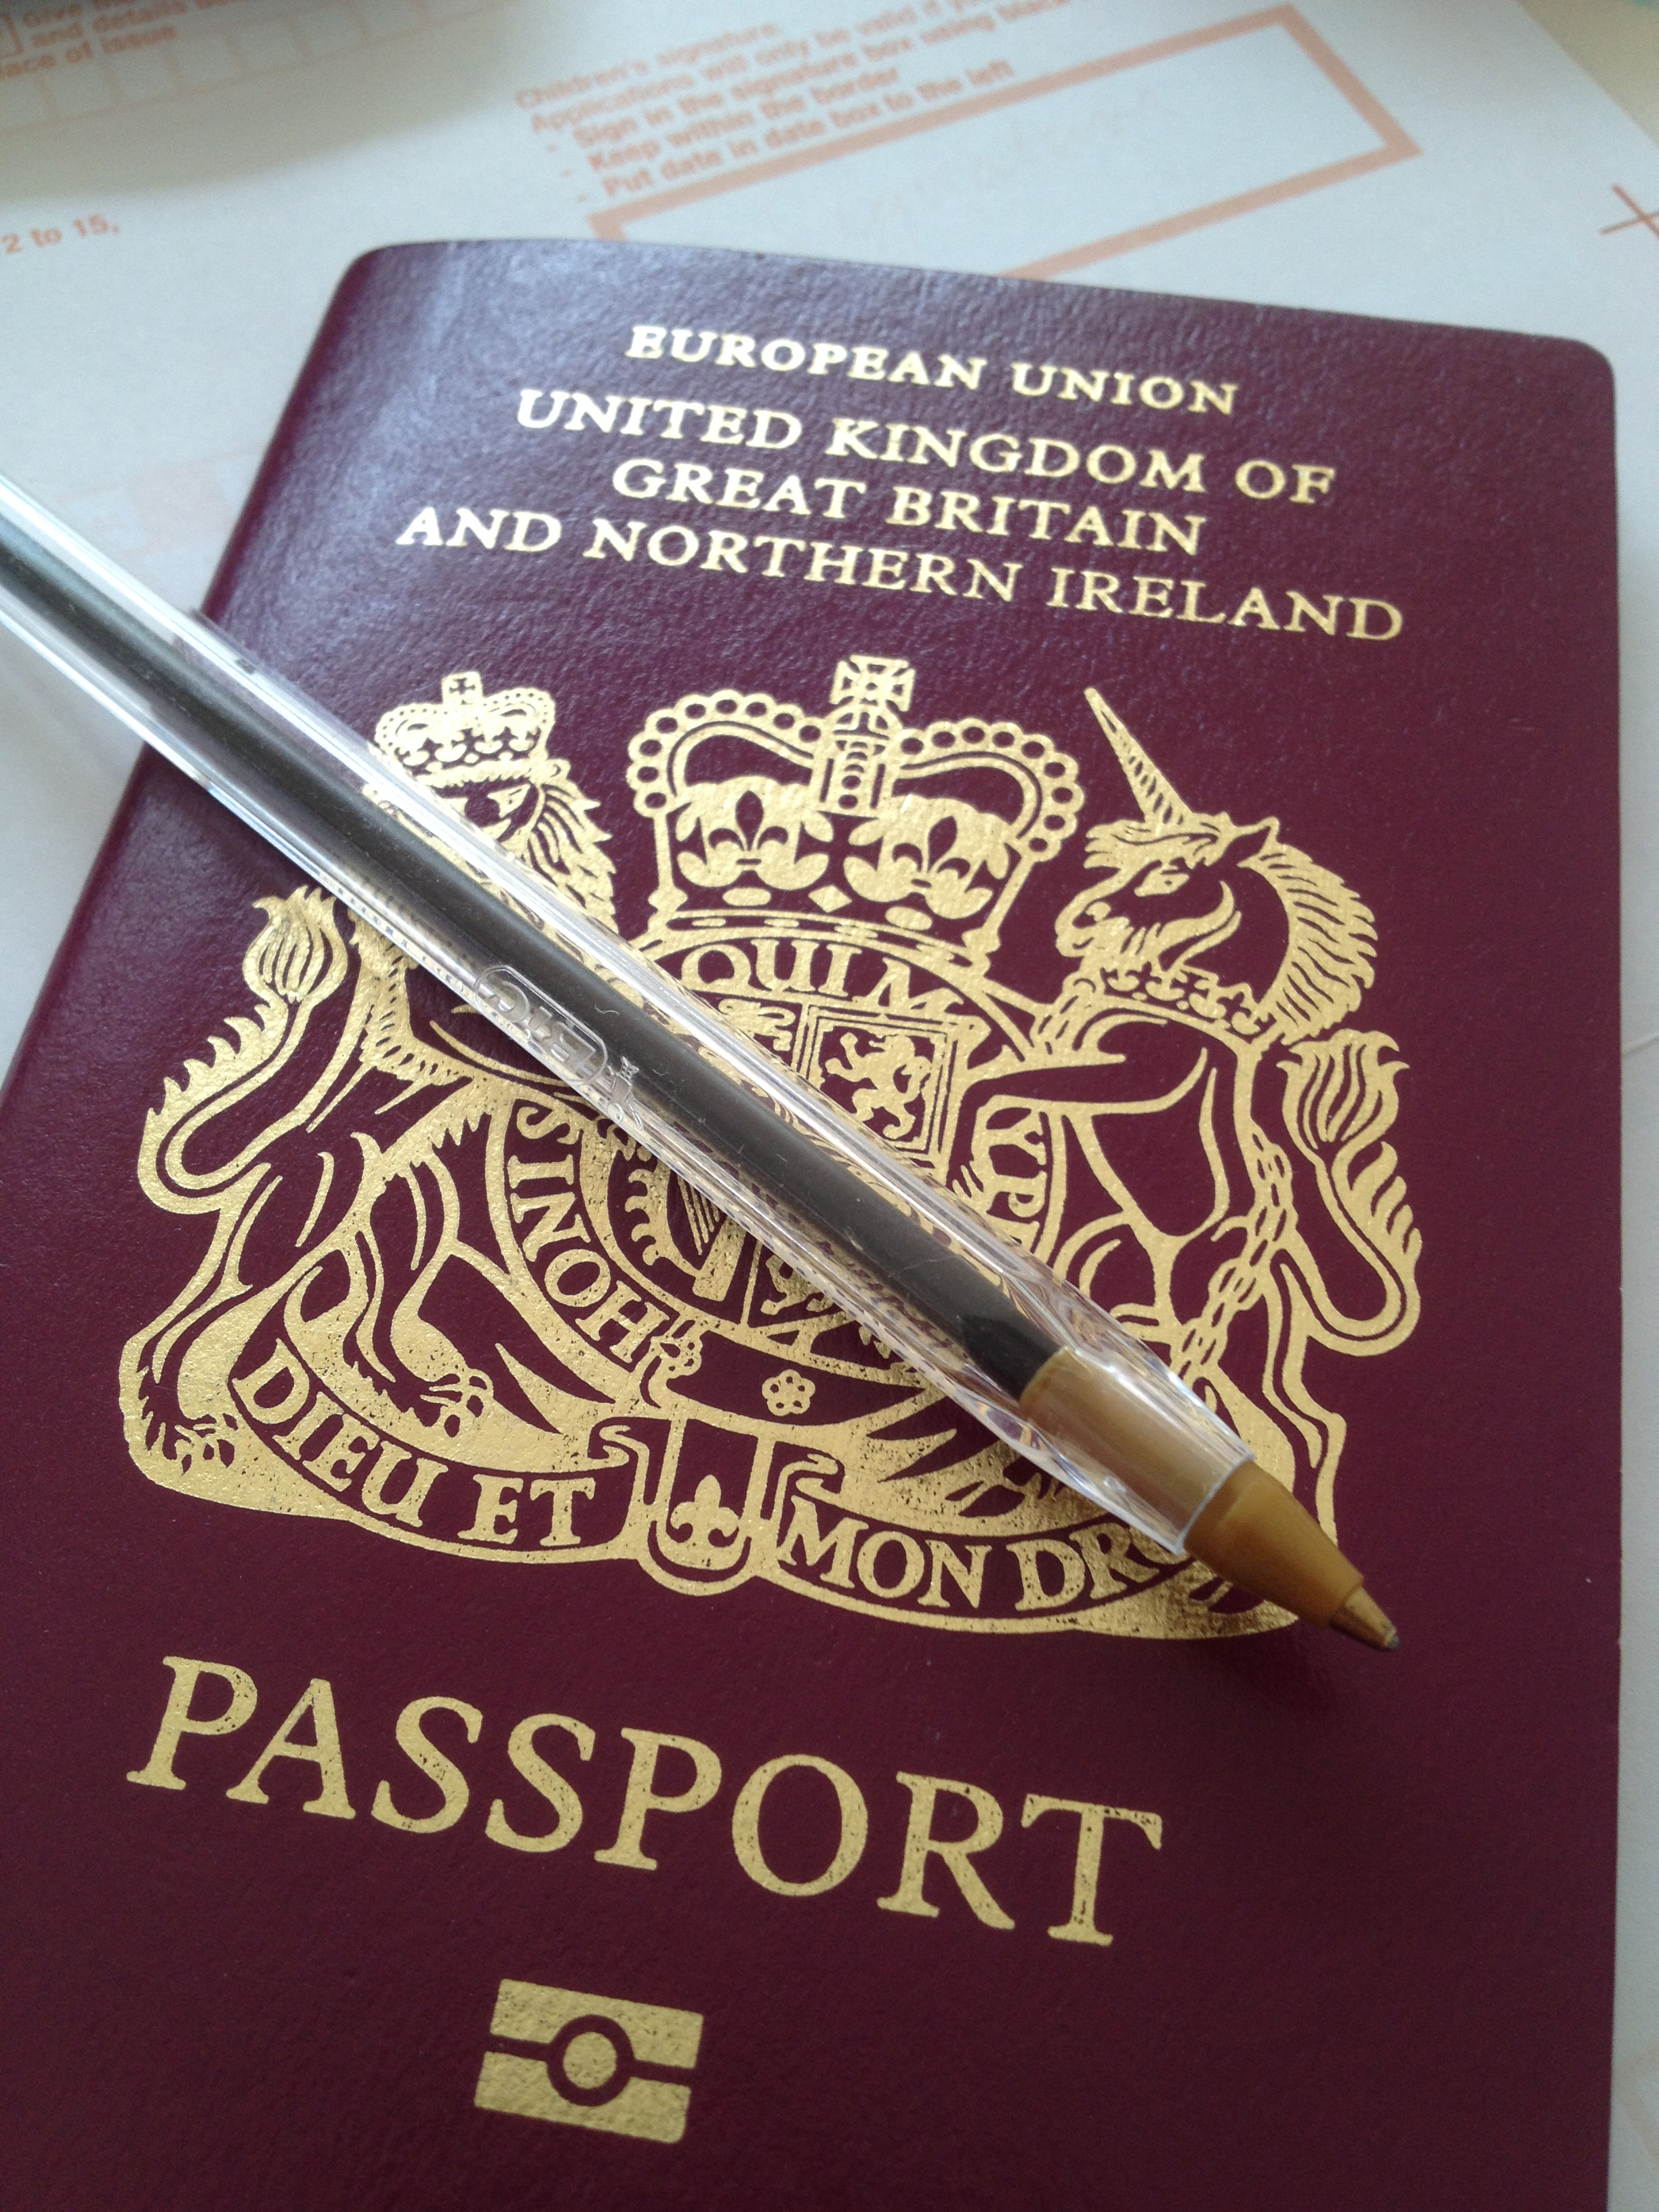 Childrens uk passport application form familytripfinder toptips childrens uk passport application form june 9 2014 tips on traveling with children passport worth remembering falaconquin